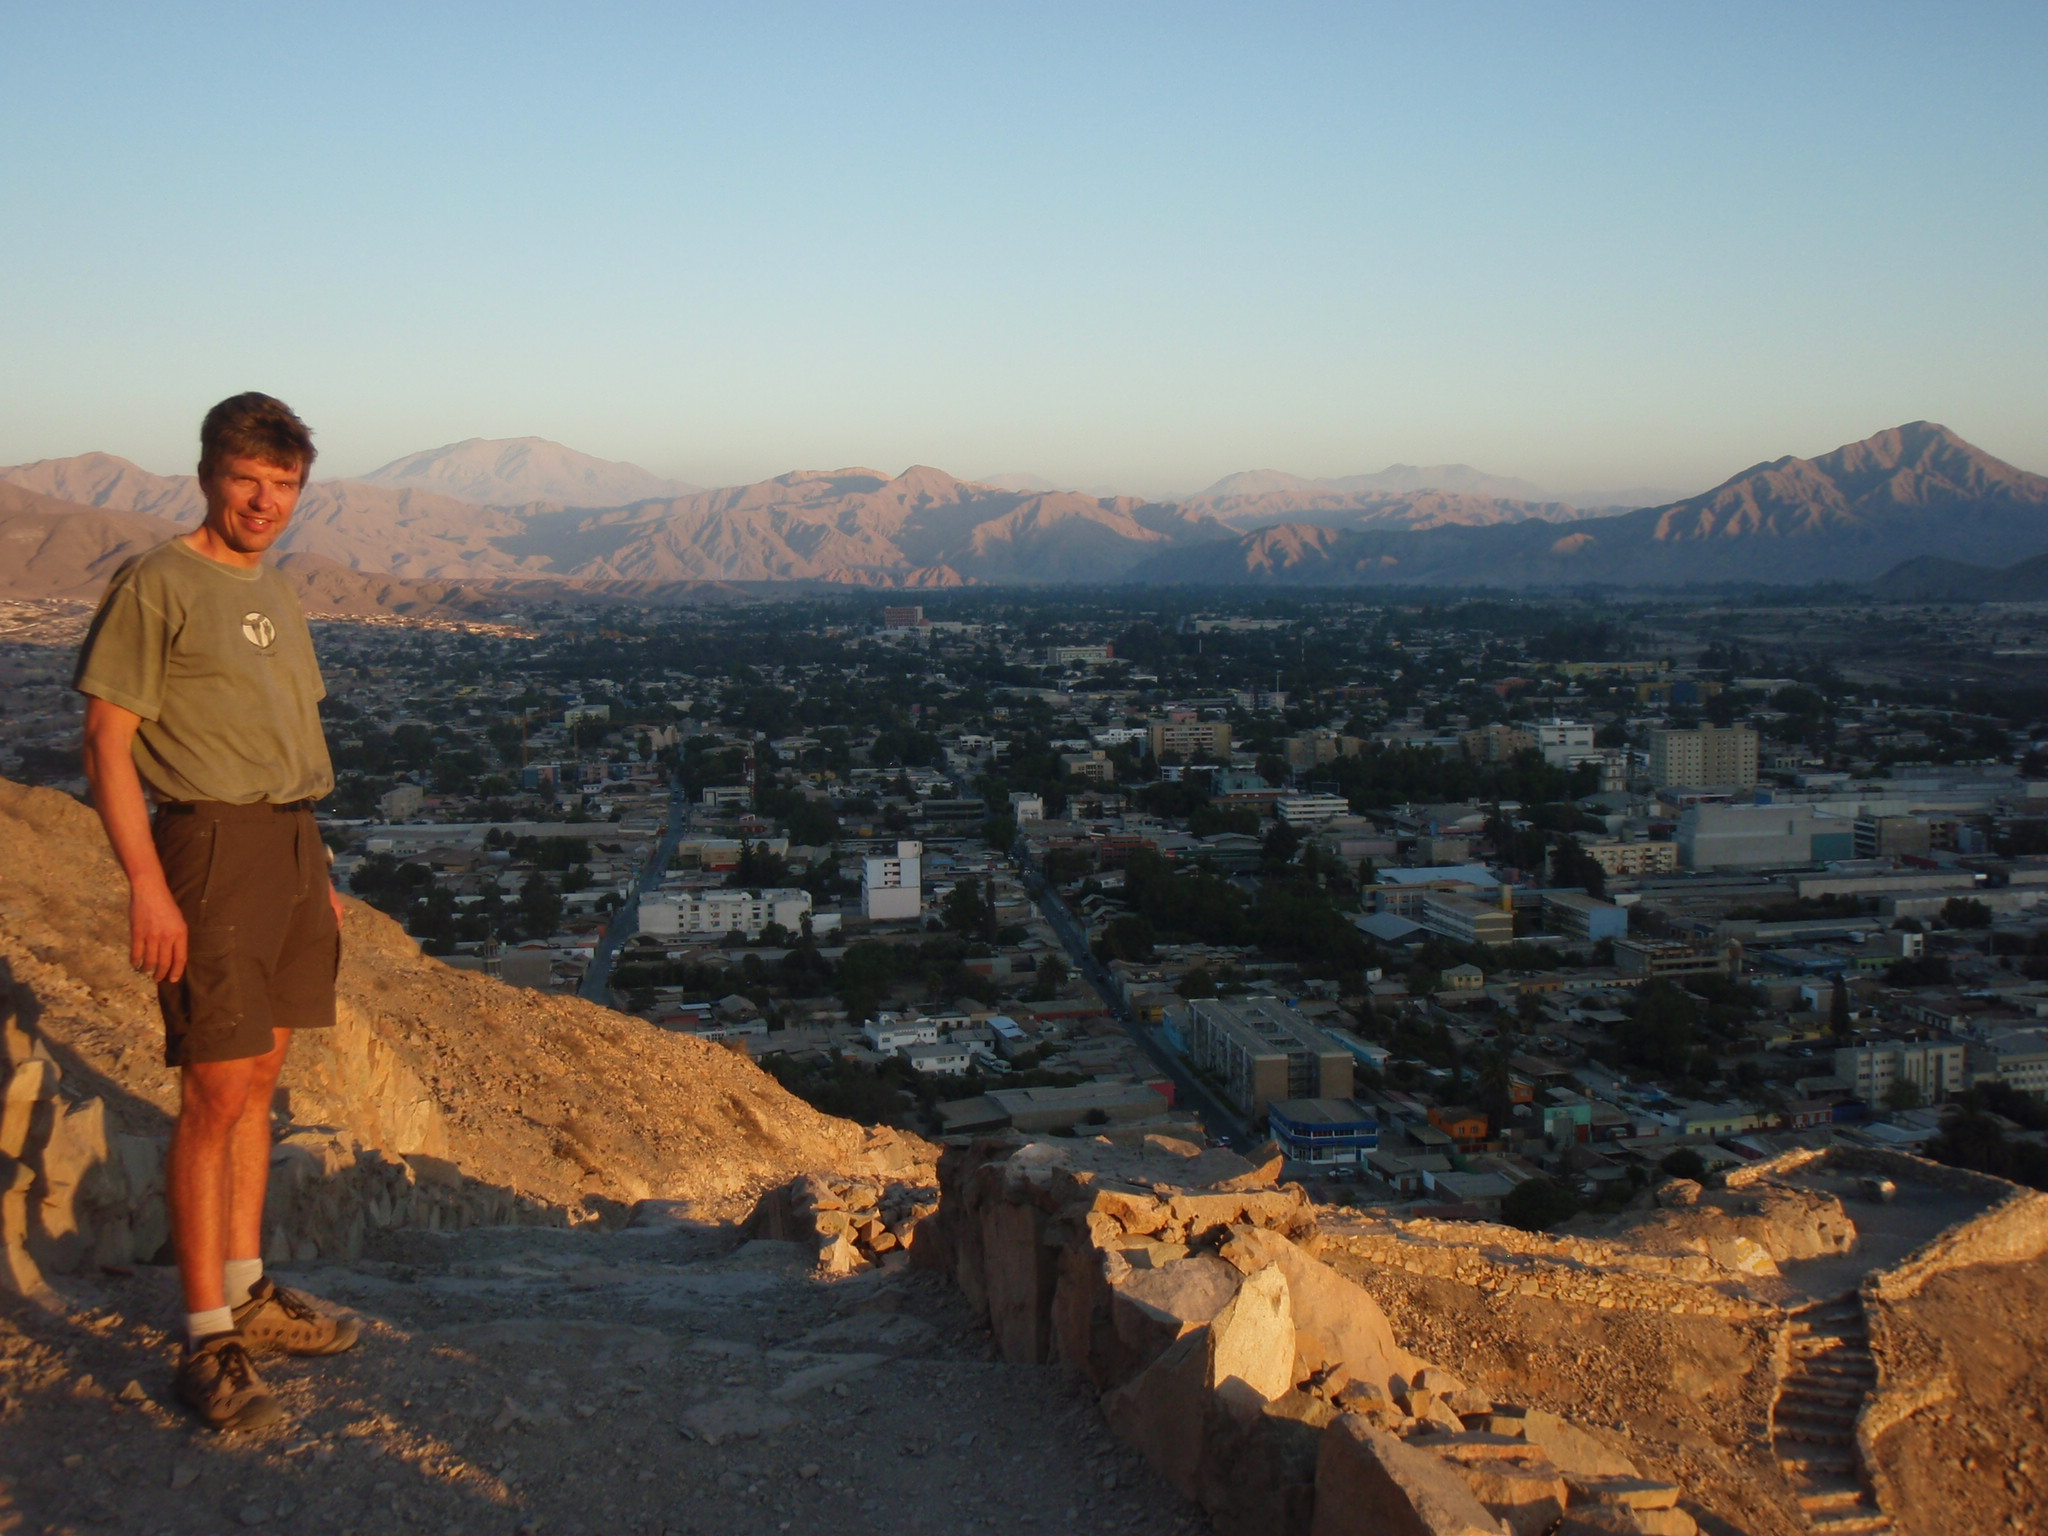 Overlooking Copiapo, a mining town in Northern Chile